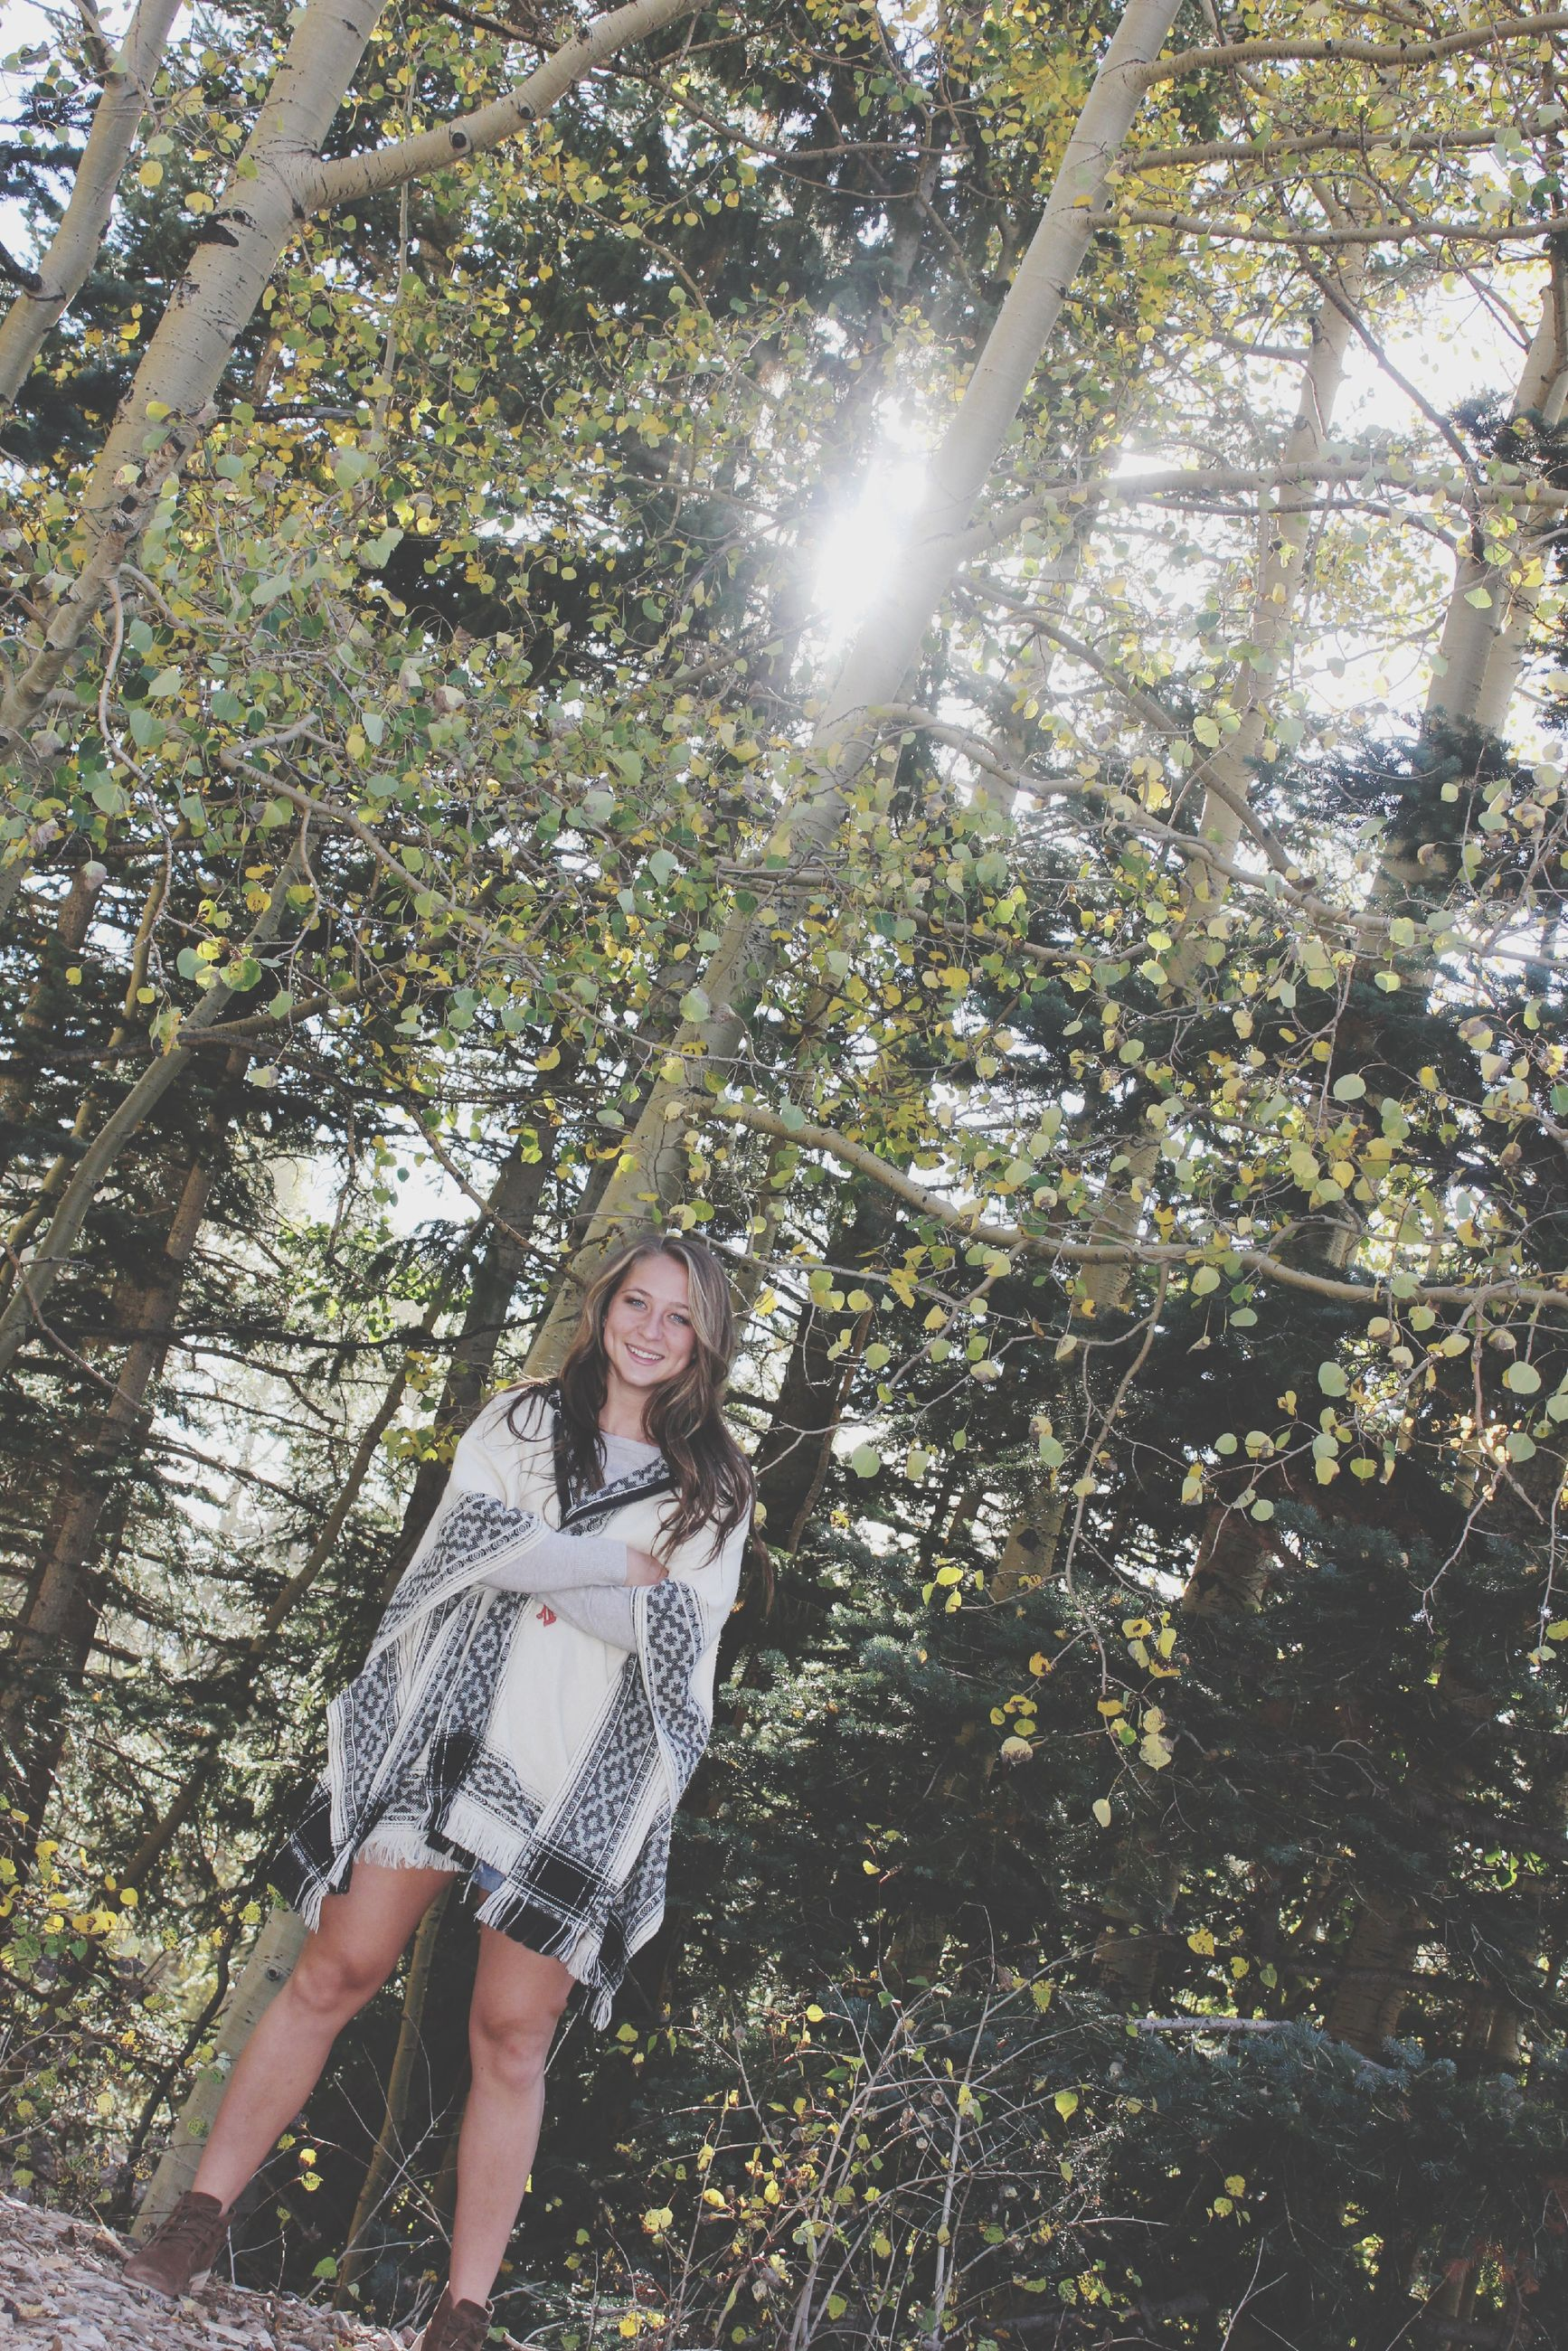 tree, sunlight, lifestyles, tree trunk, leisure activity, branch, low angle view, growth, sunbeam, day, nature, forest, outdoors, holding, sun, lens flare, standing, sunny